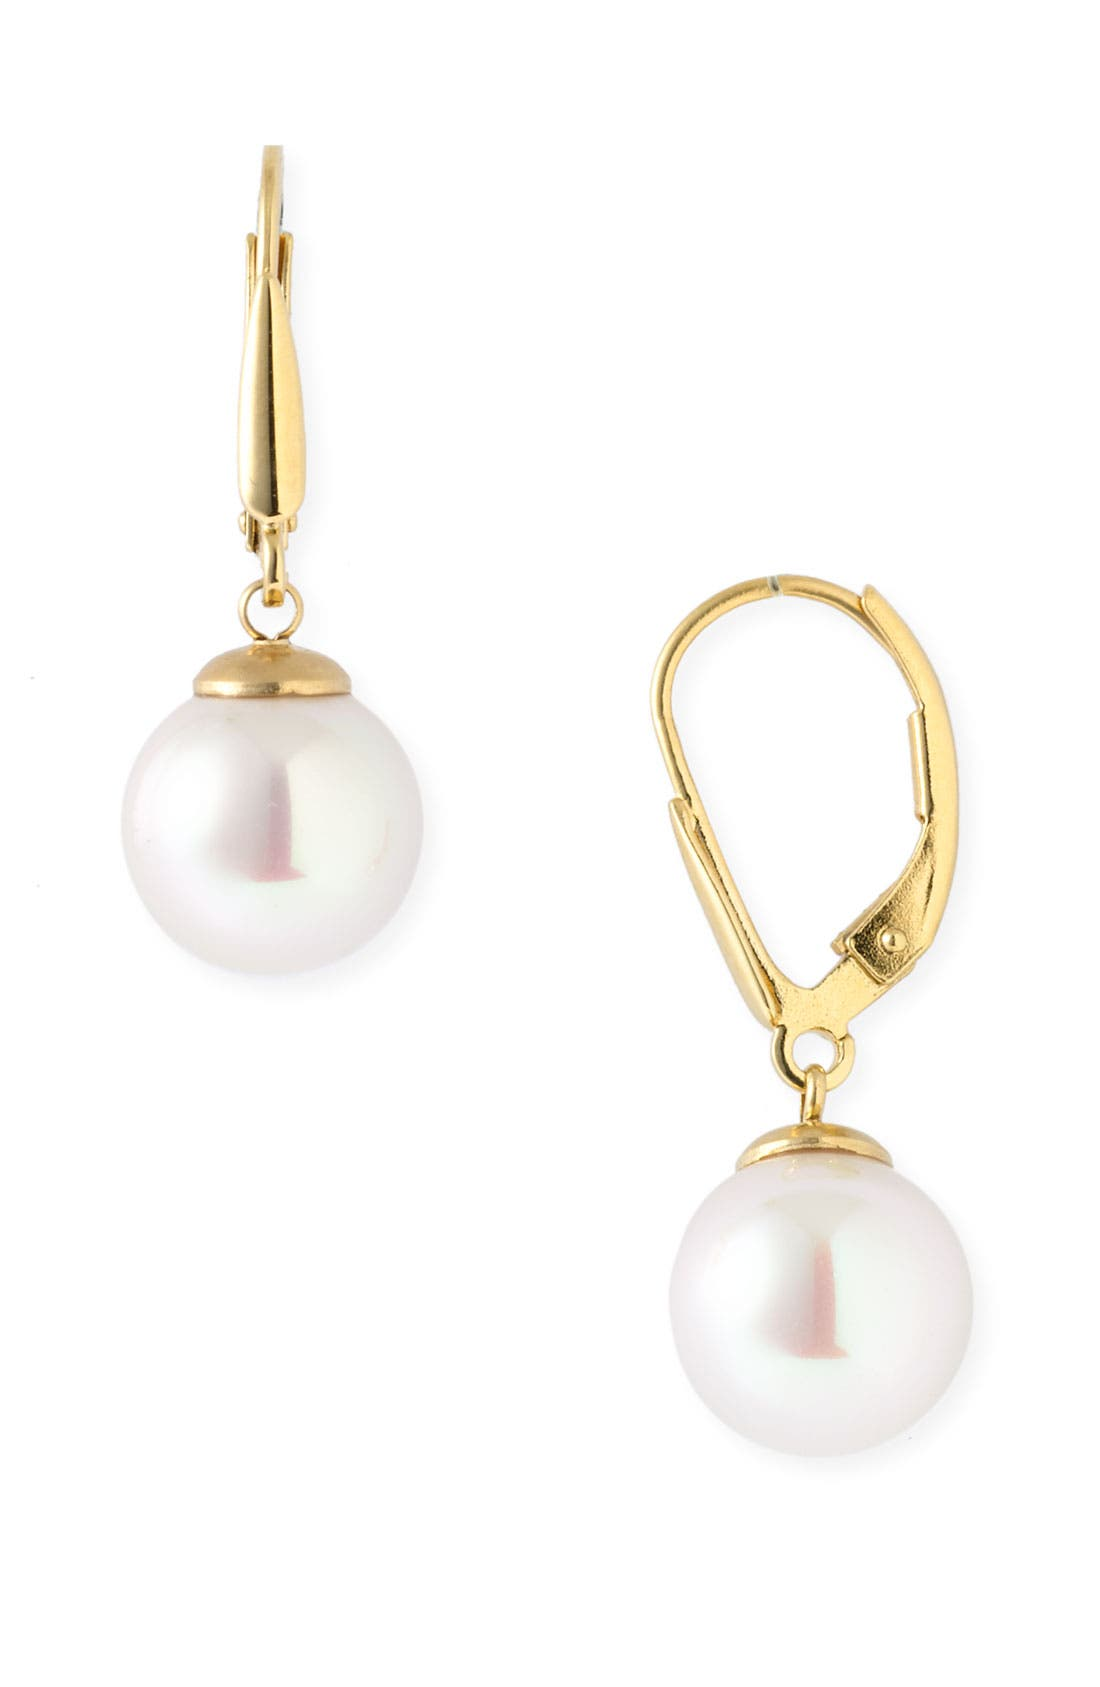 Pearl Drop Earrings,                         Main,                         color, White Pearl / Gold